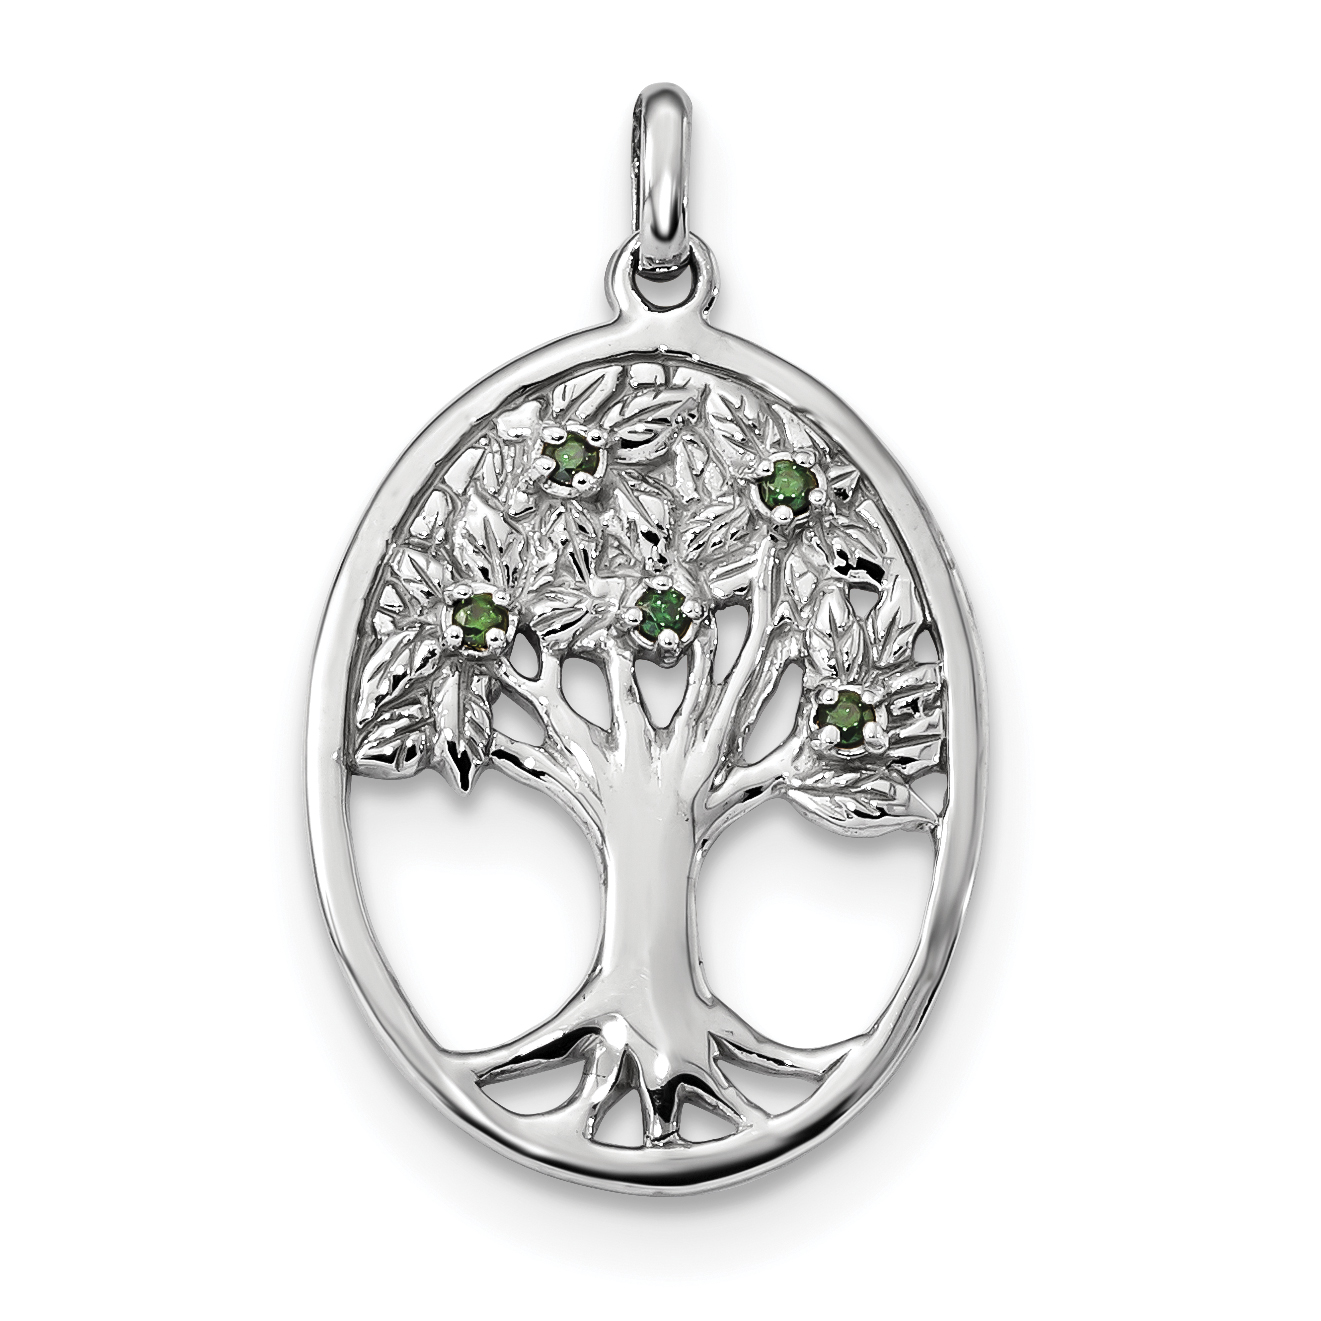 925 Sterling Silver Green Glass Buds Oval Tree Pendant Charm Necklace Outdoor Nature